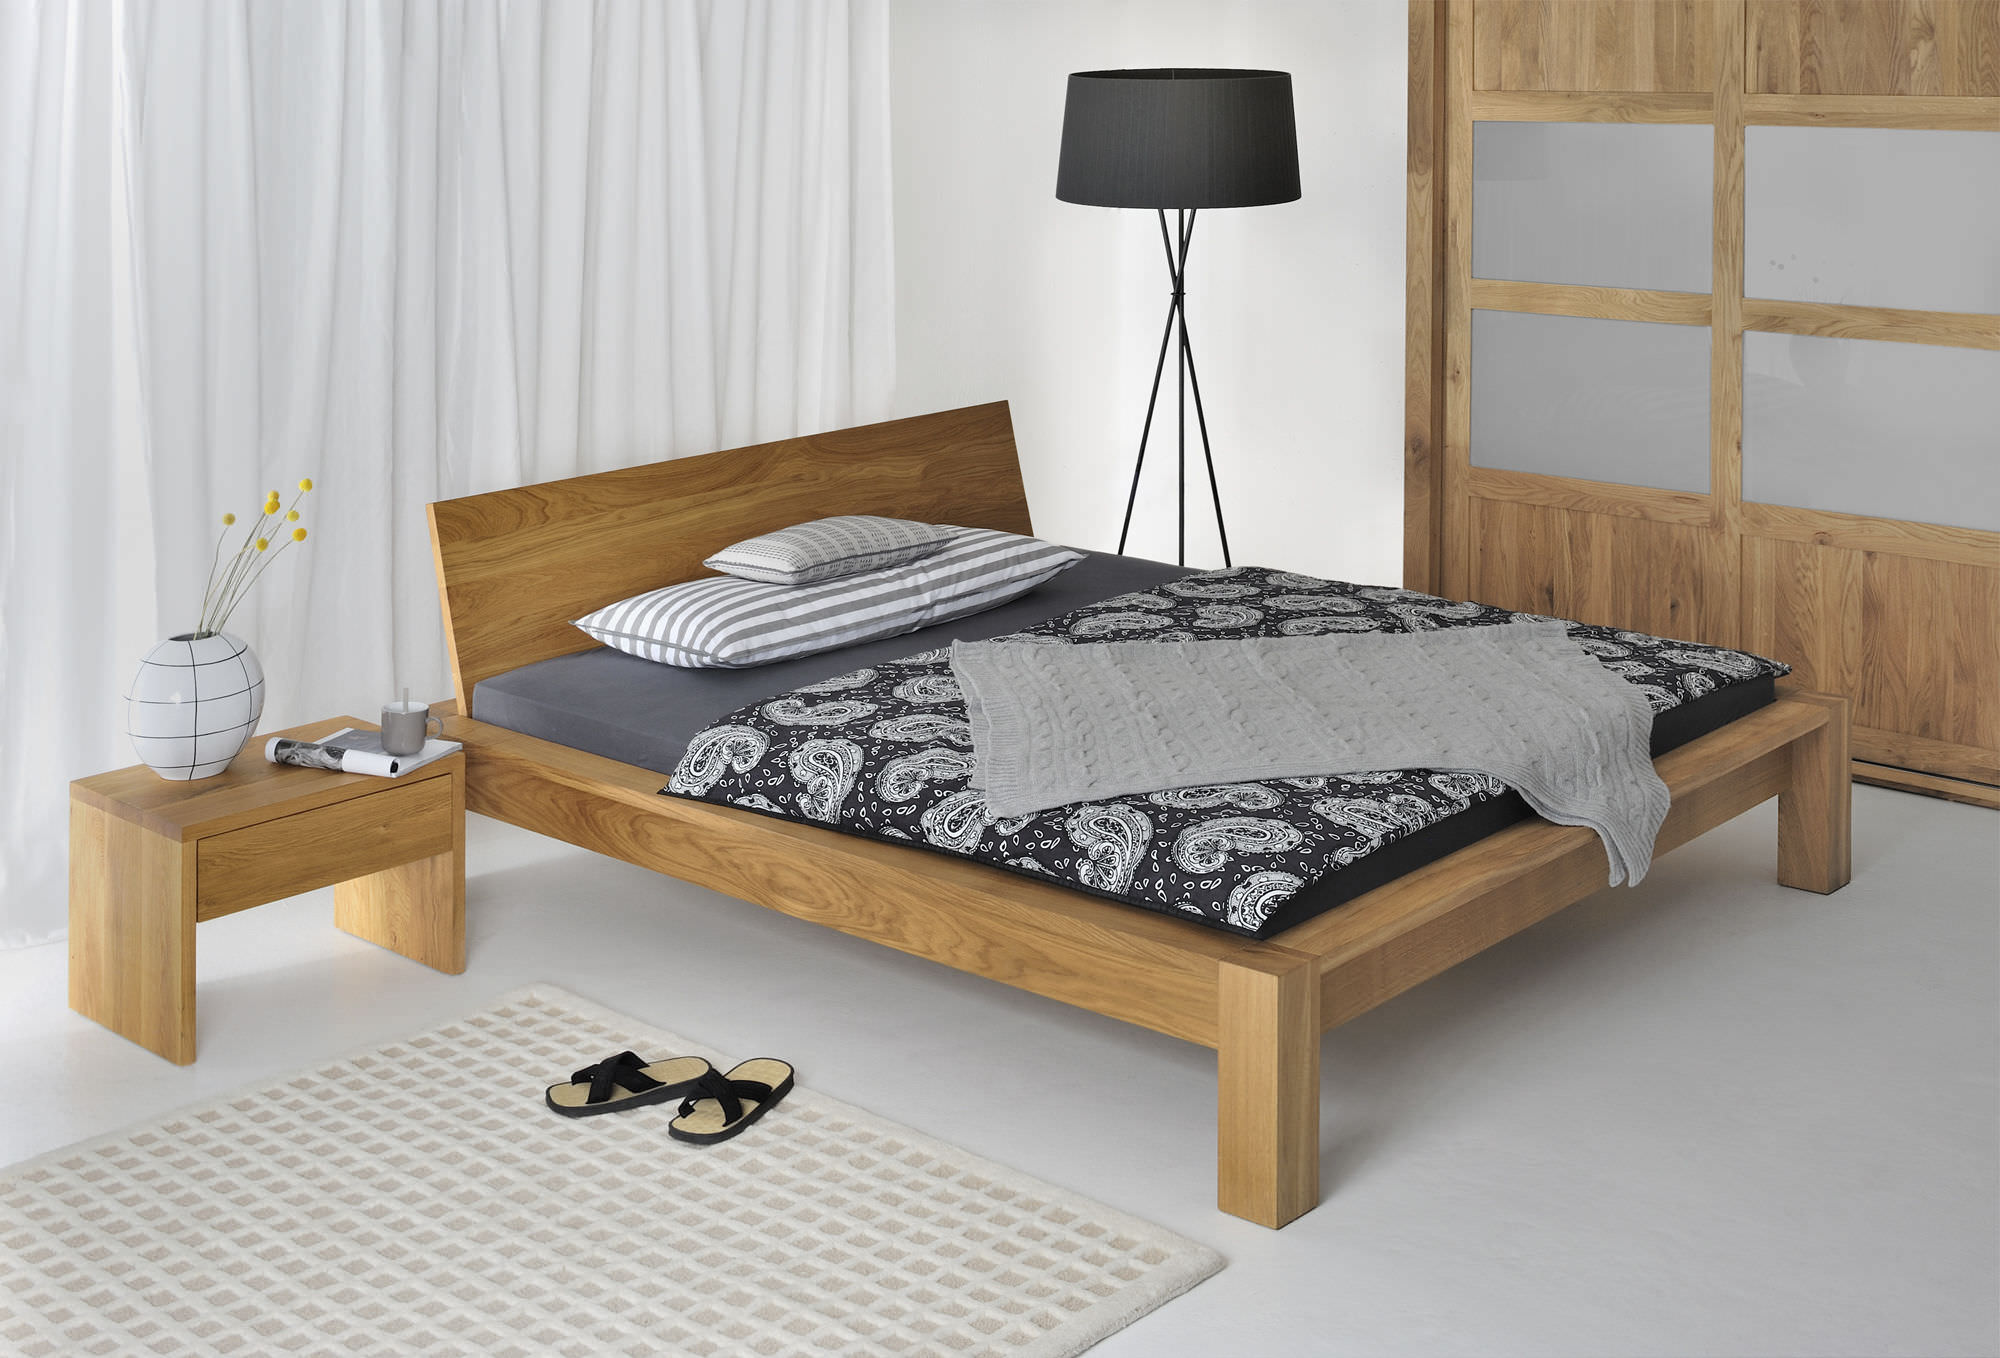 Double bed designs in wood - Double Bed Contemporary Solid Wood With Headboard Taurus